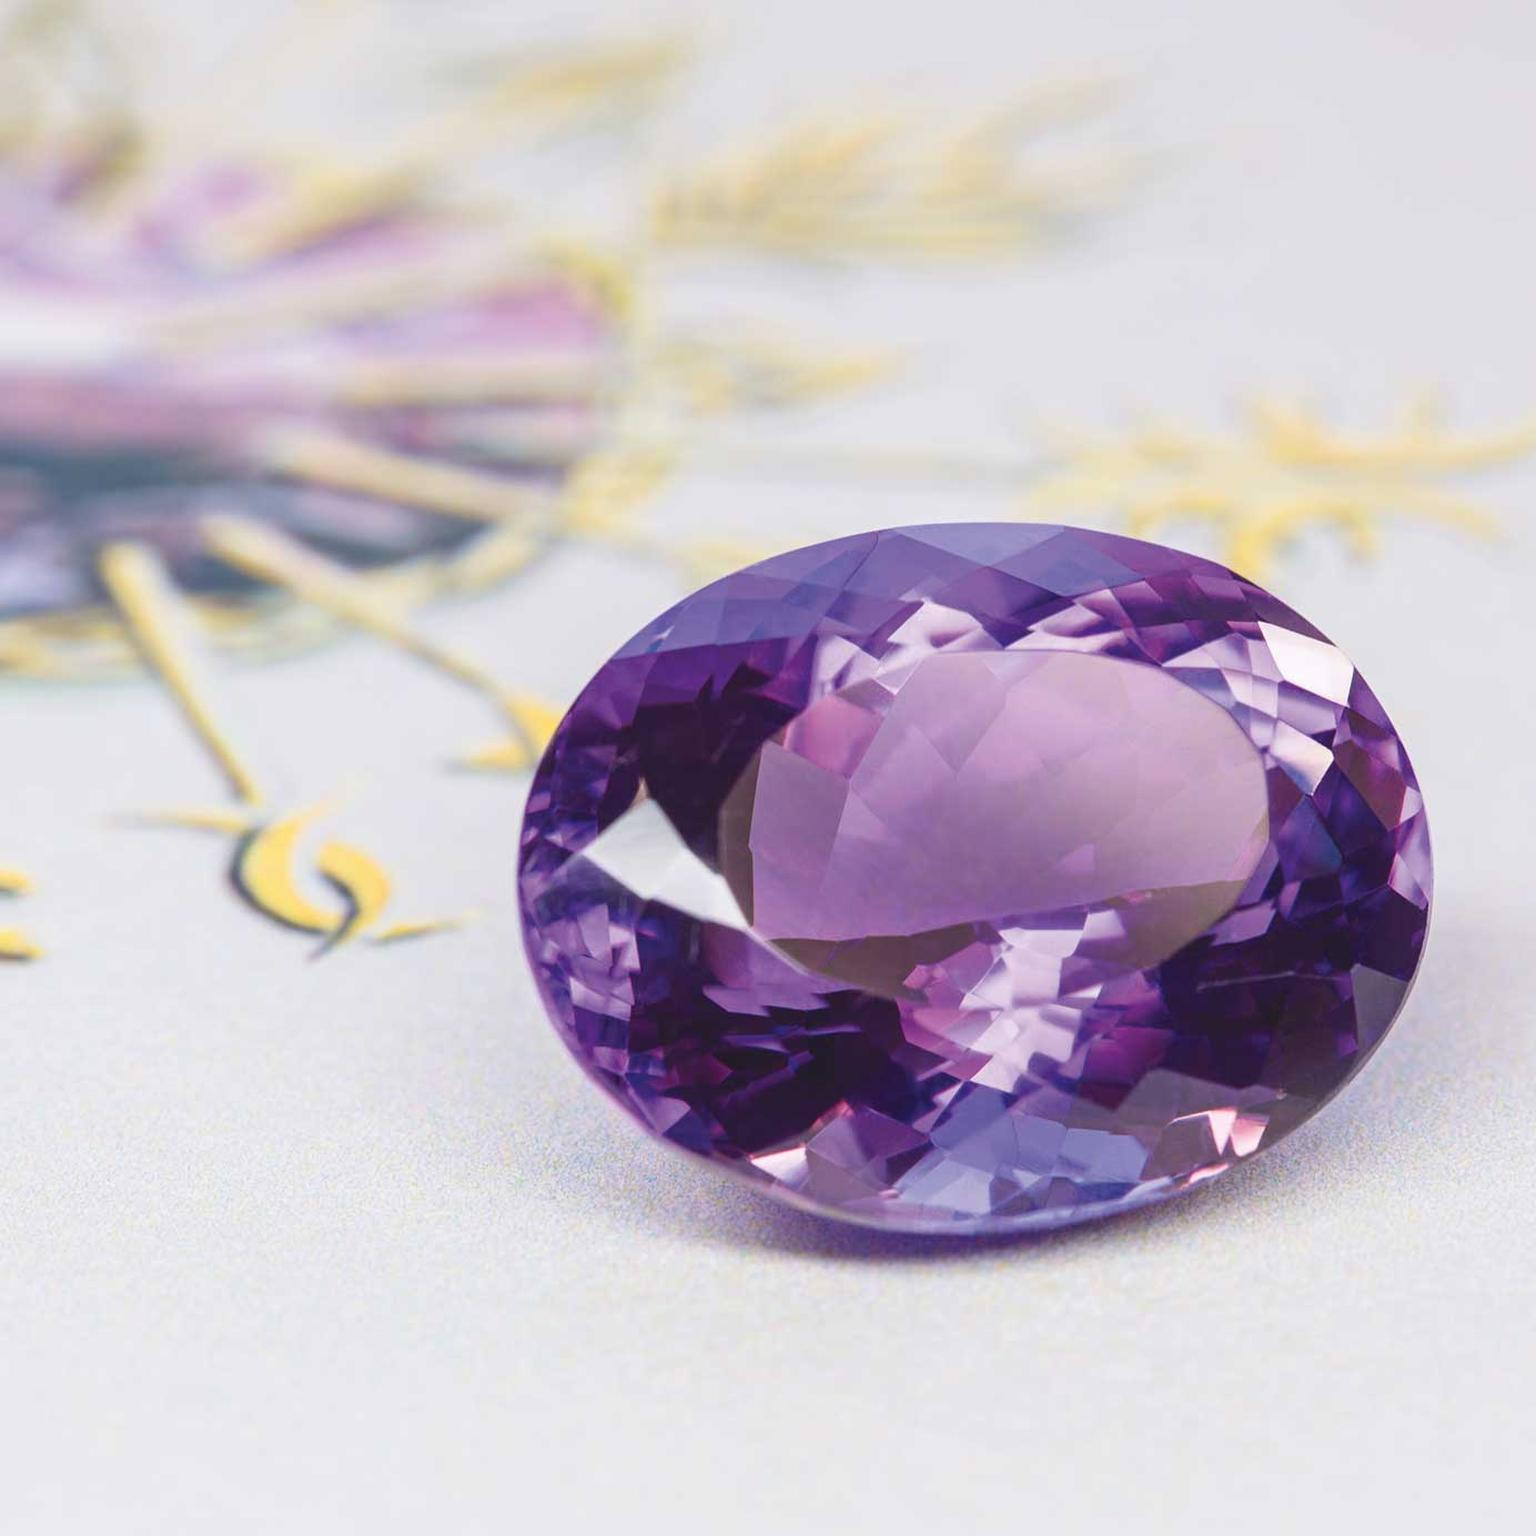 tapper your s caring guide expert gemstone investment for color to care purple gemstones customer colored advice